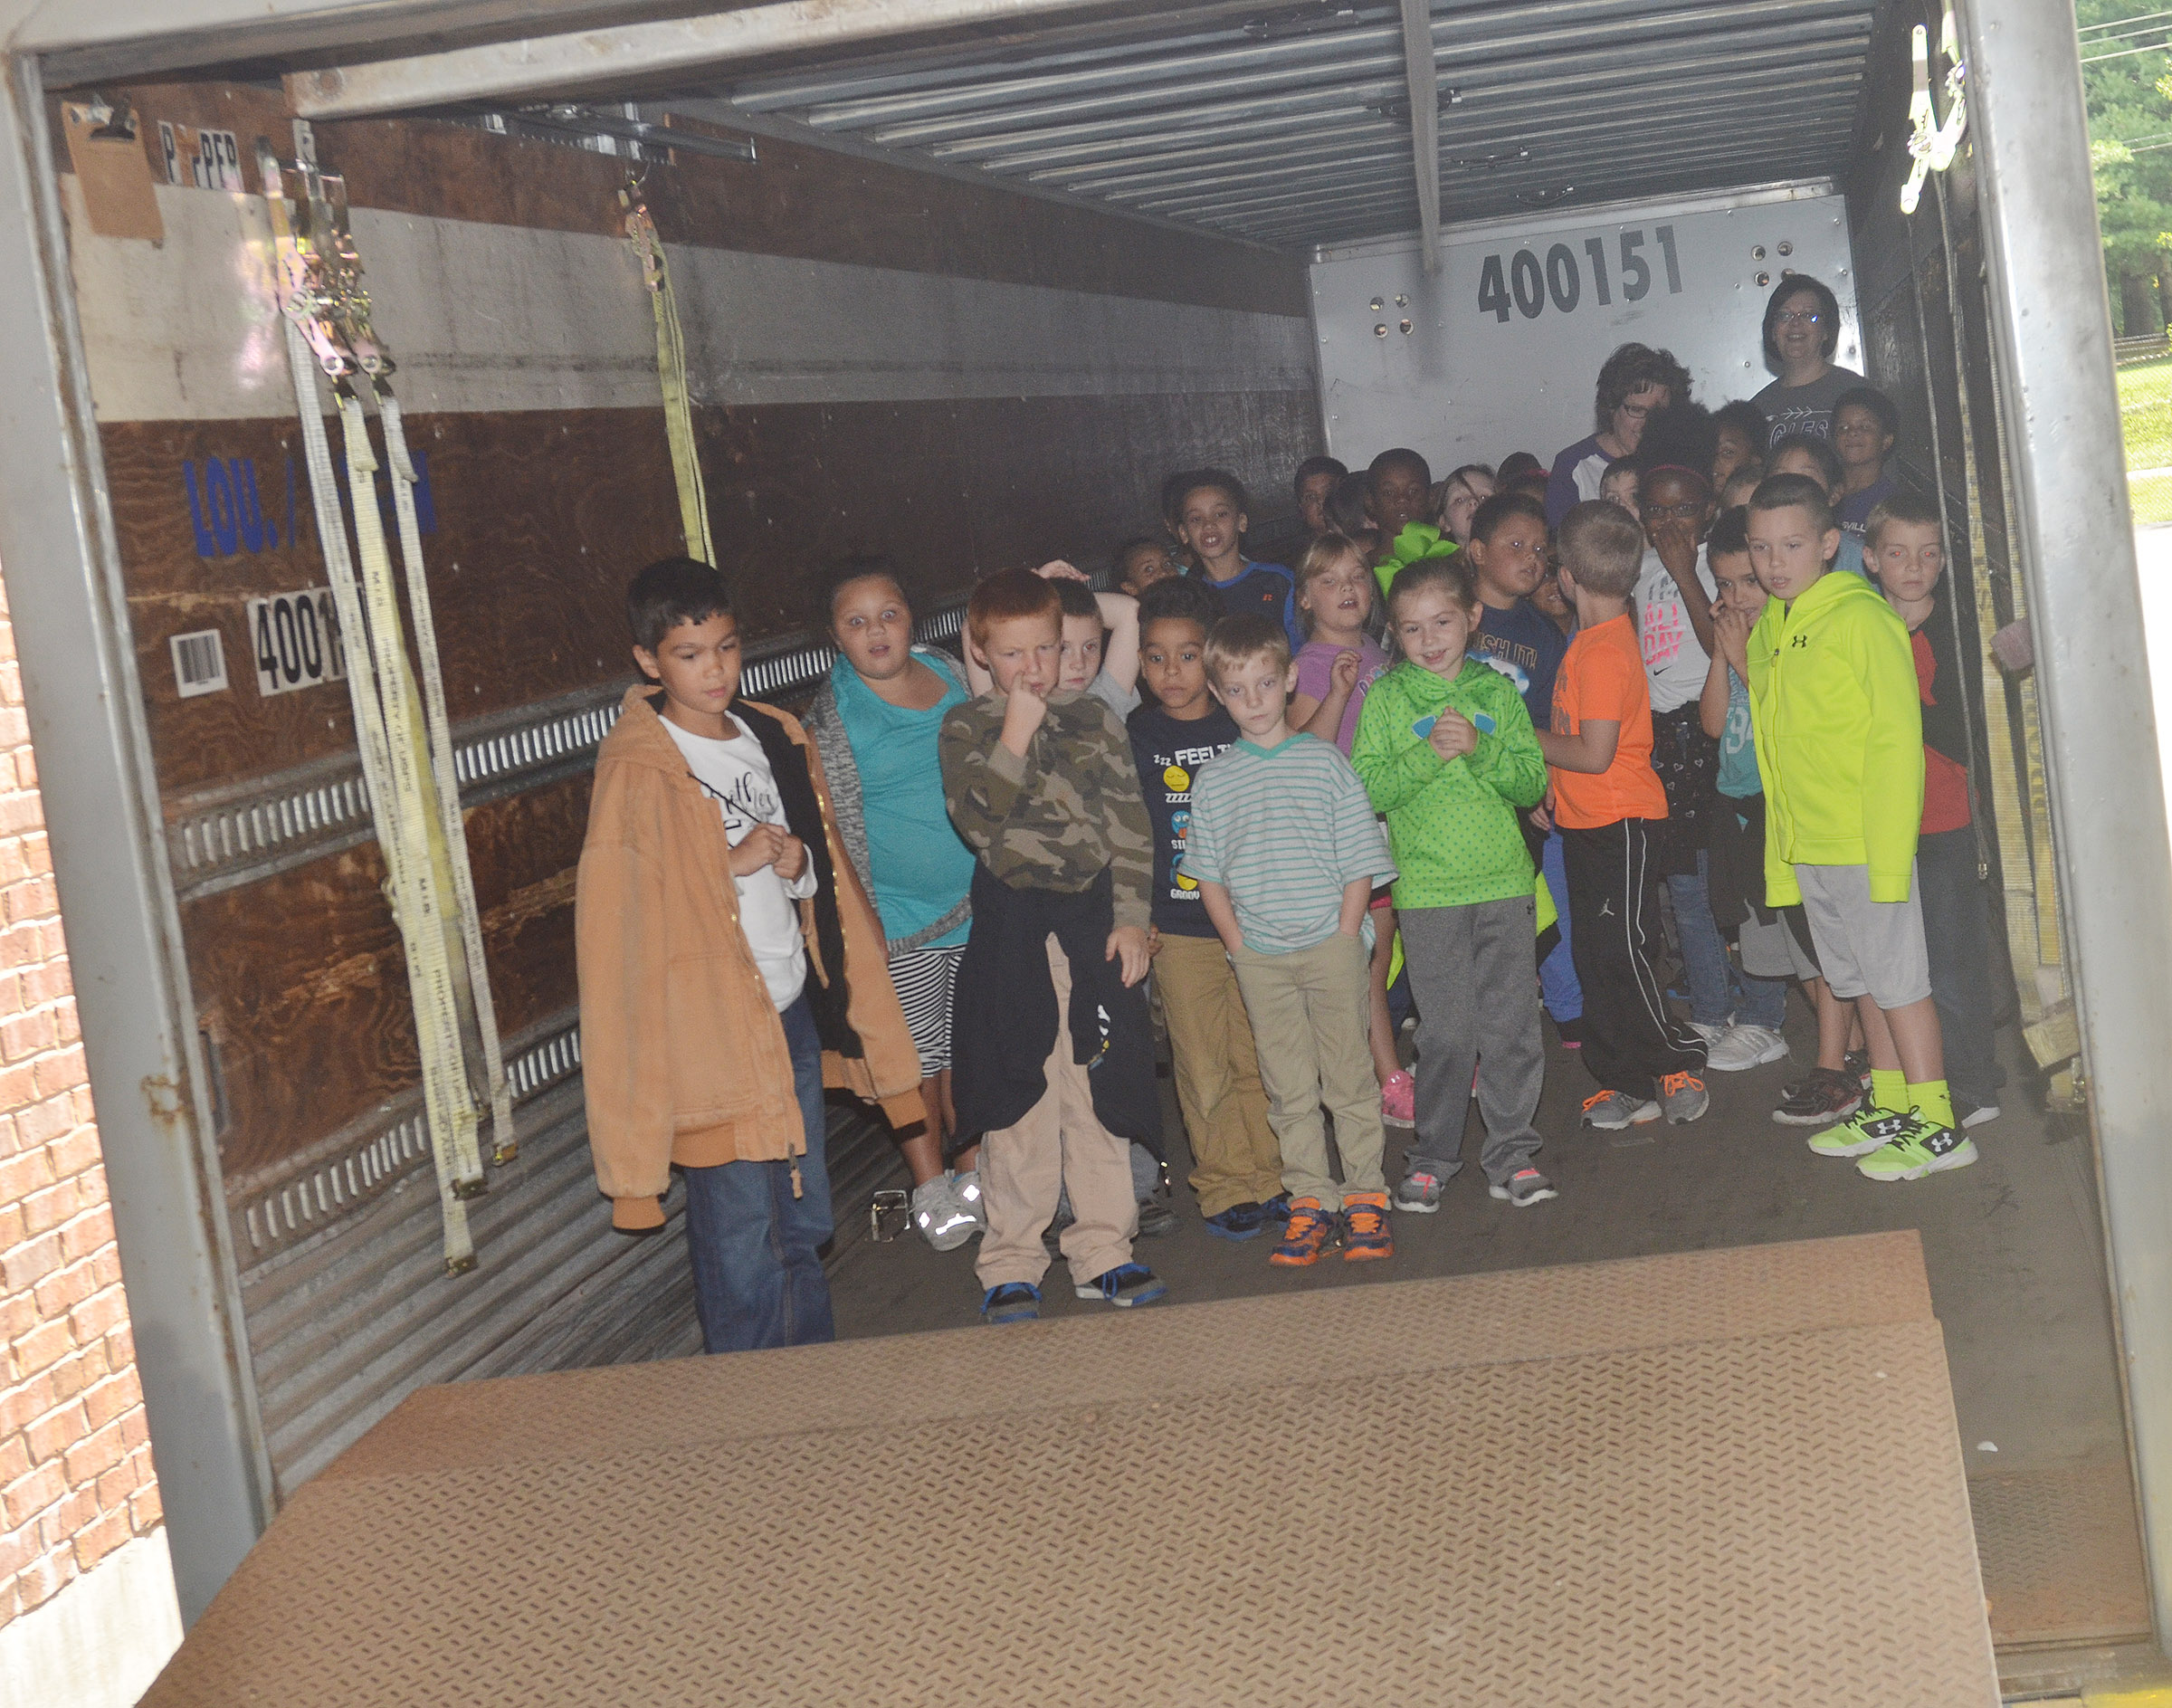 CES second-graders are temporarily closed in a mail truck.